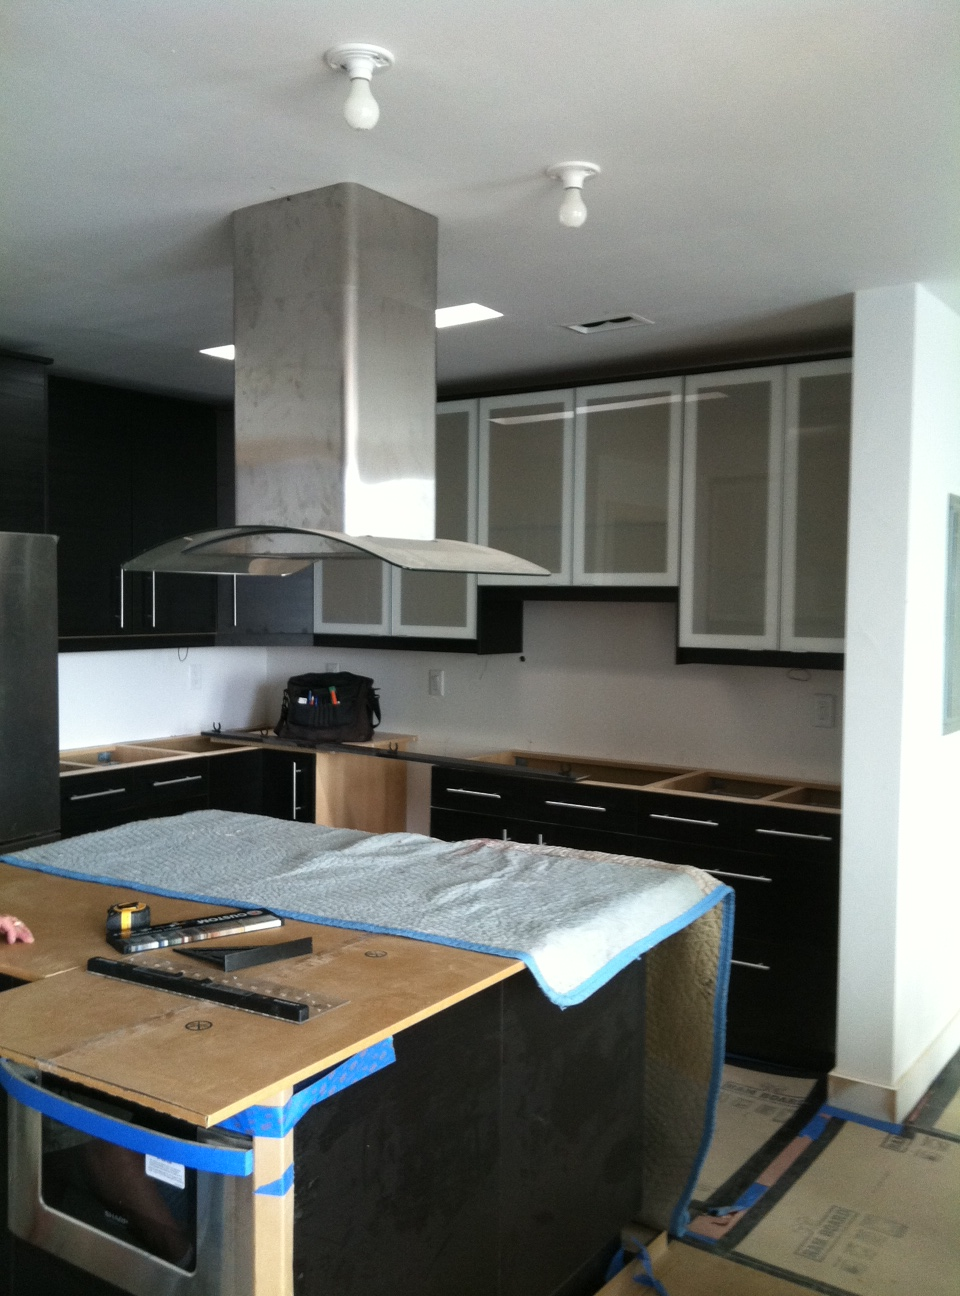 The kitchen is taking shape